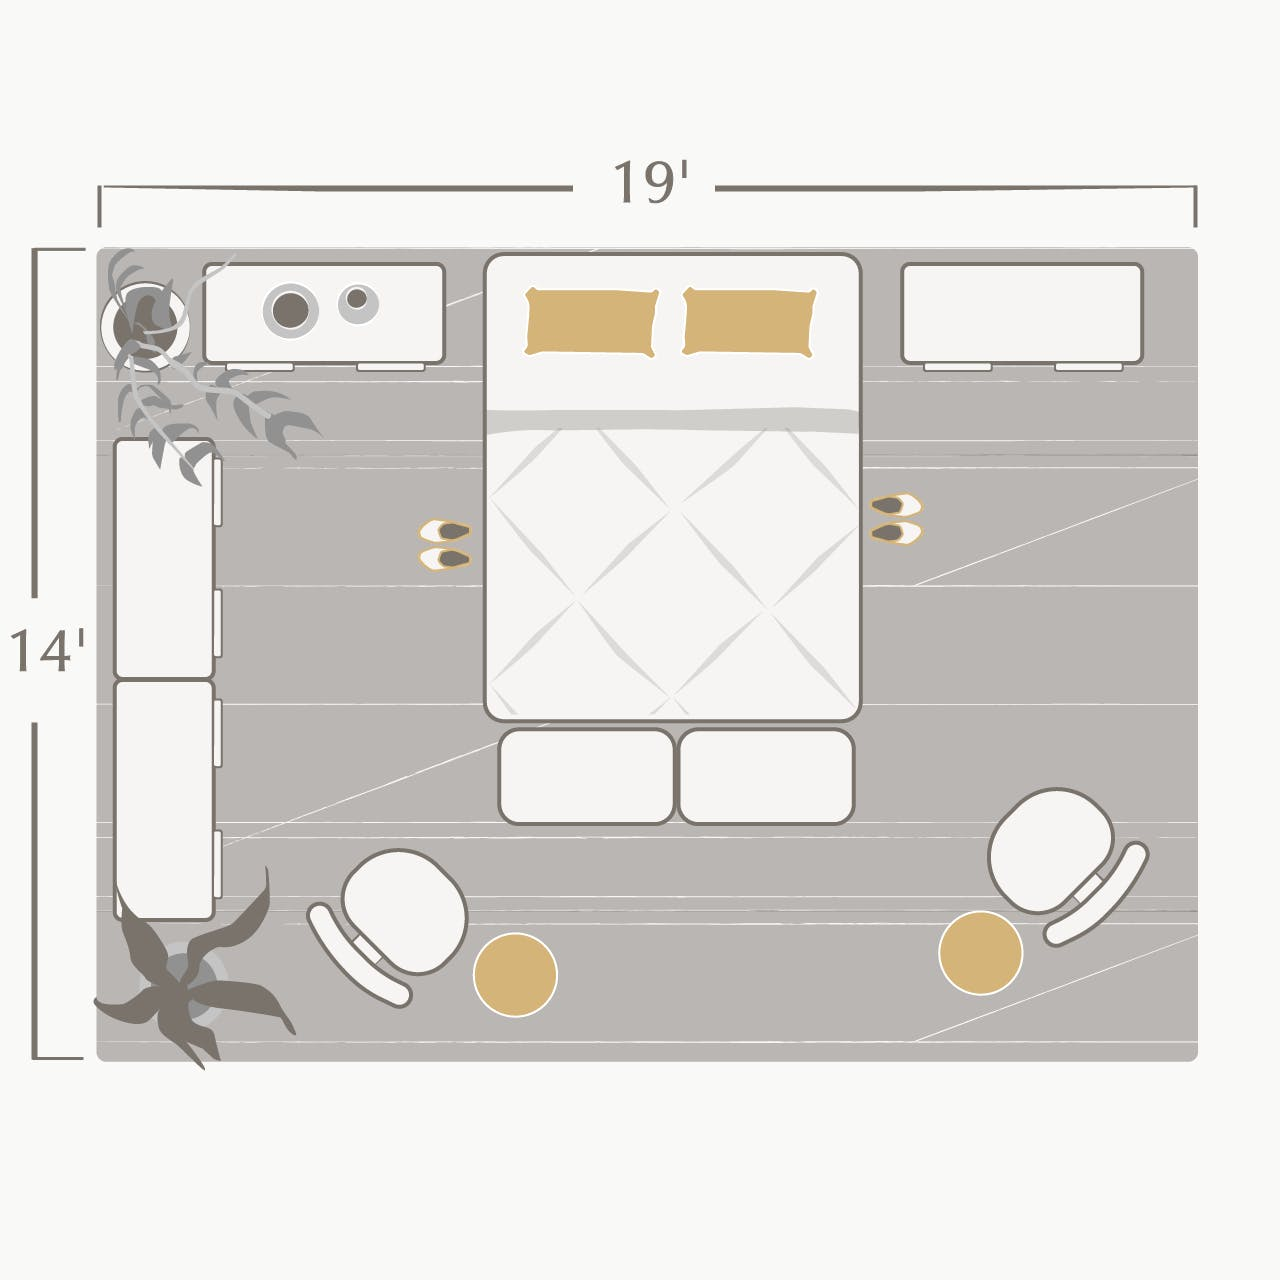 bedroom with king size bed in it and dimensions of room labeled with 19 feet wide by 14 feet long